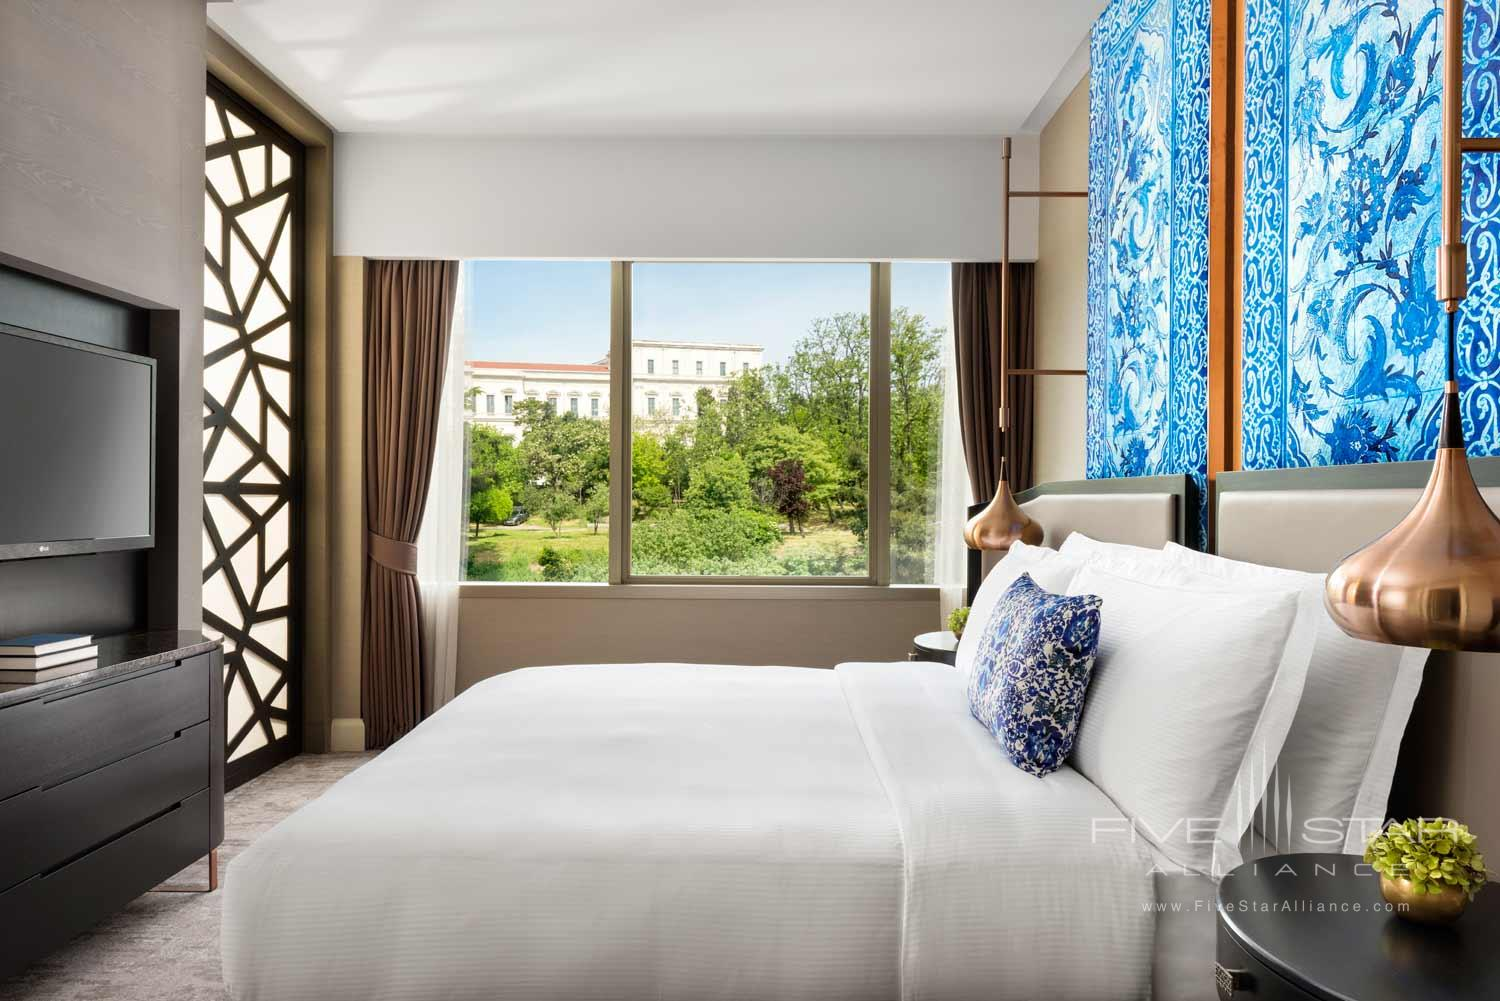 Park Suite at Ritz Carlton Istanbul, Turkey